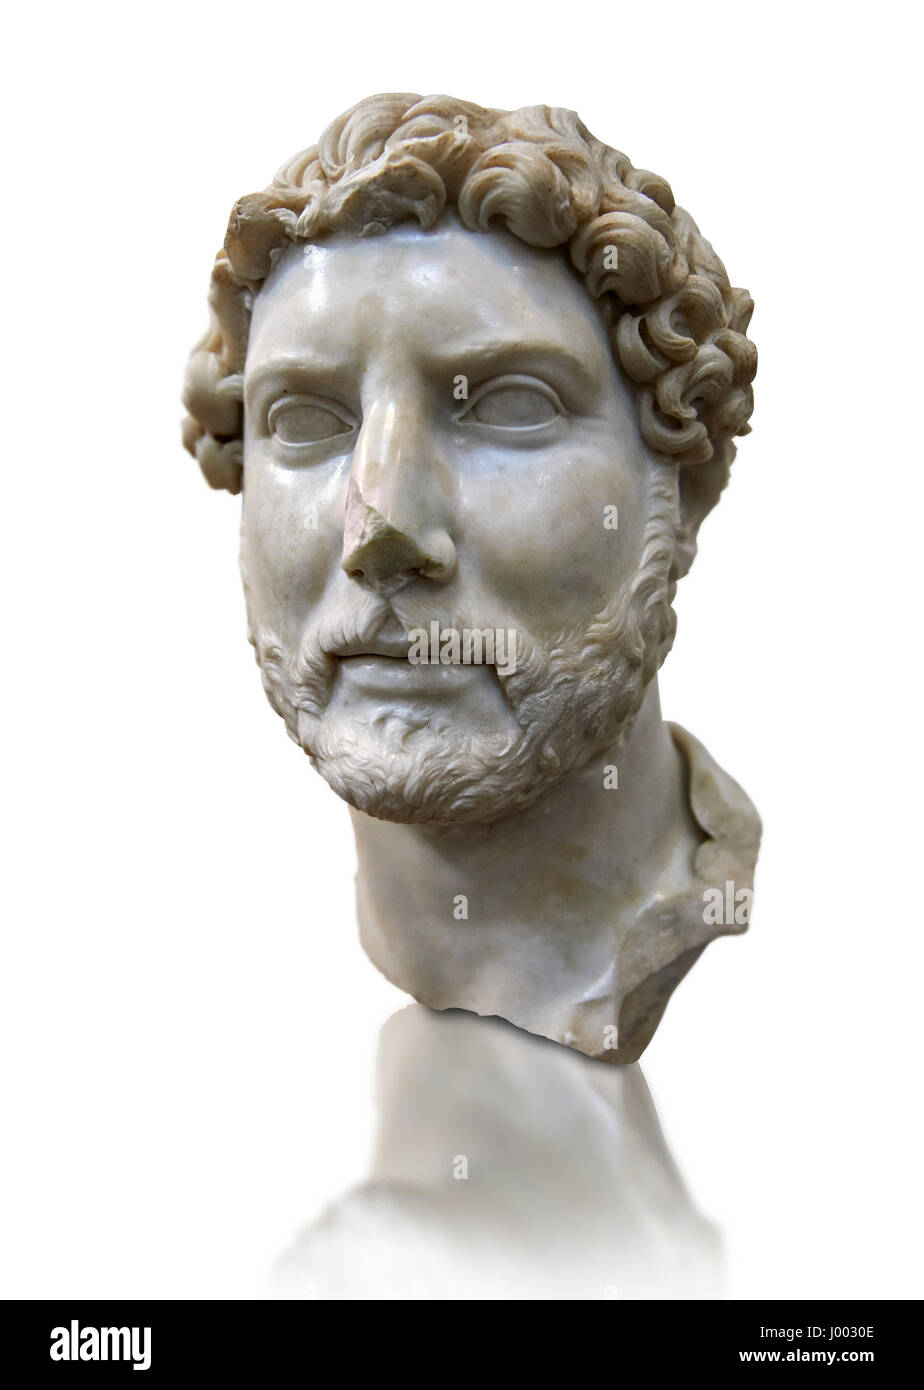 Roman portrait bust of Emperor Hadrian, 117-138 AD excavated from the S. Barbiana region near the Station Terminus, - Stock Image